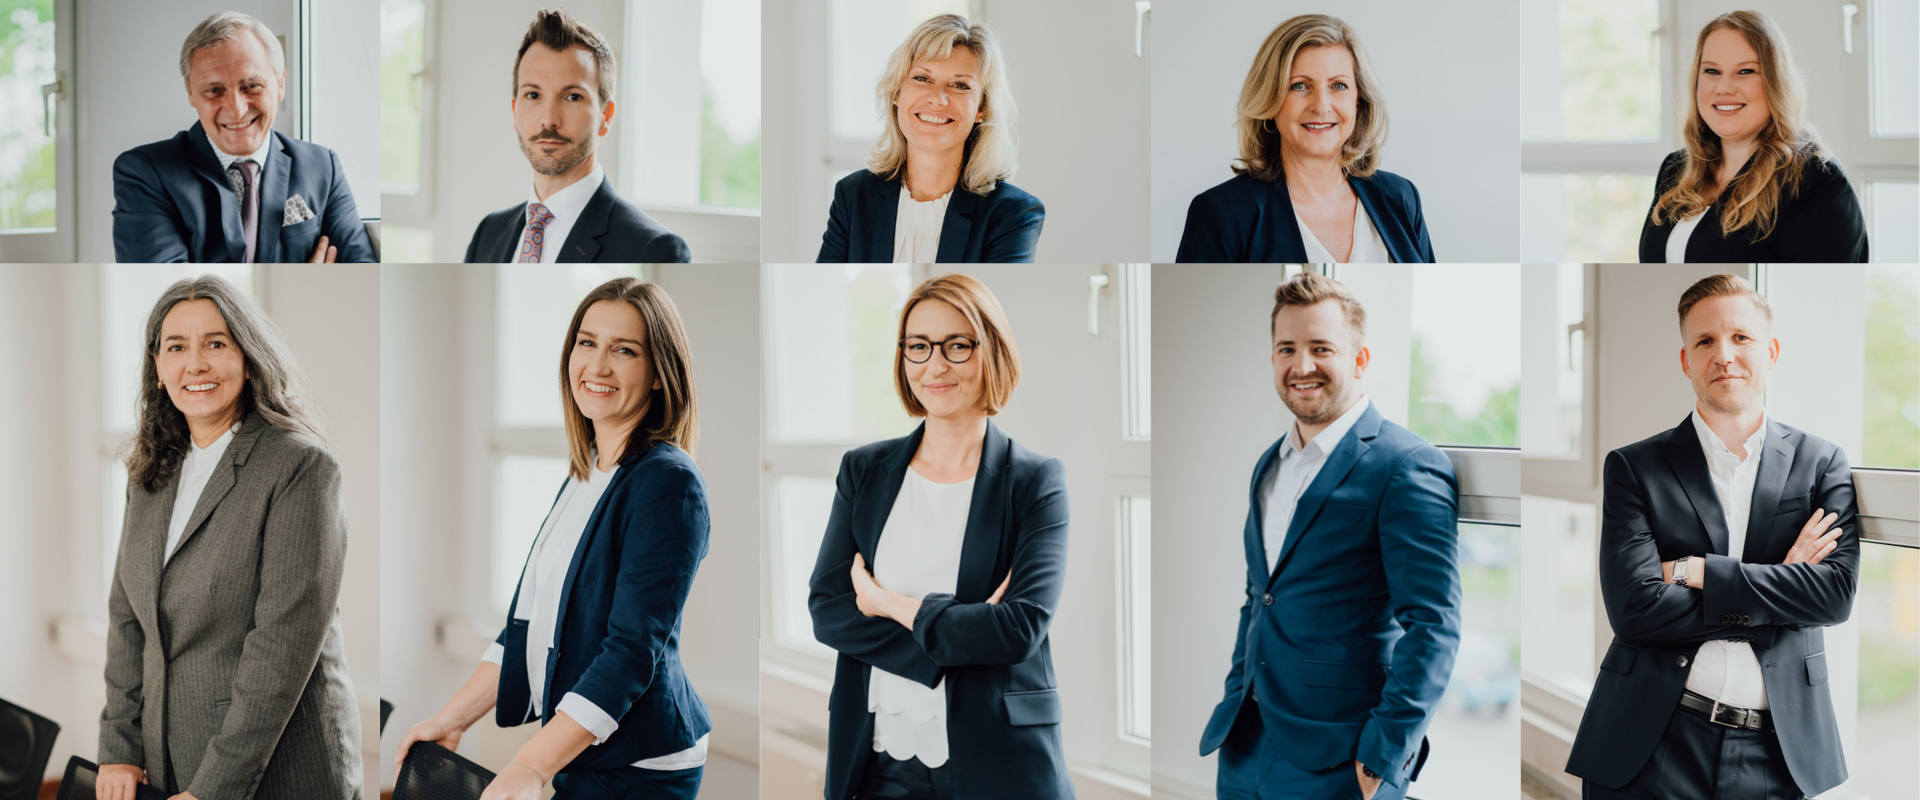 roCONSULTING Team Portraits